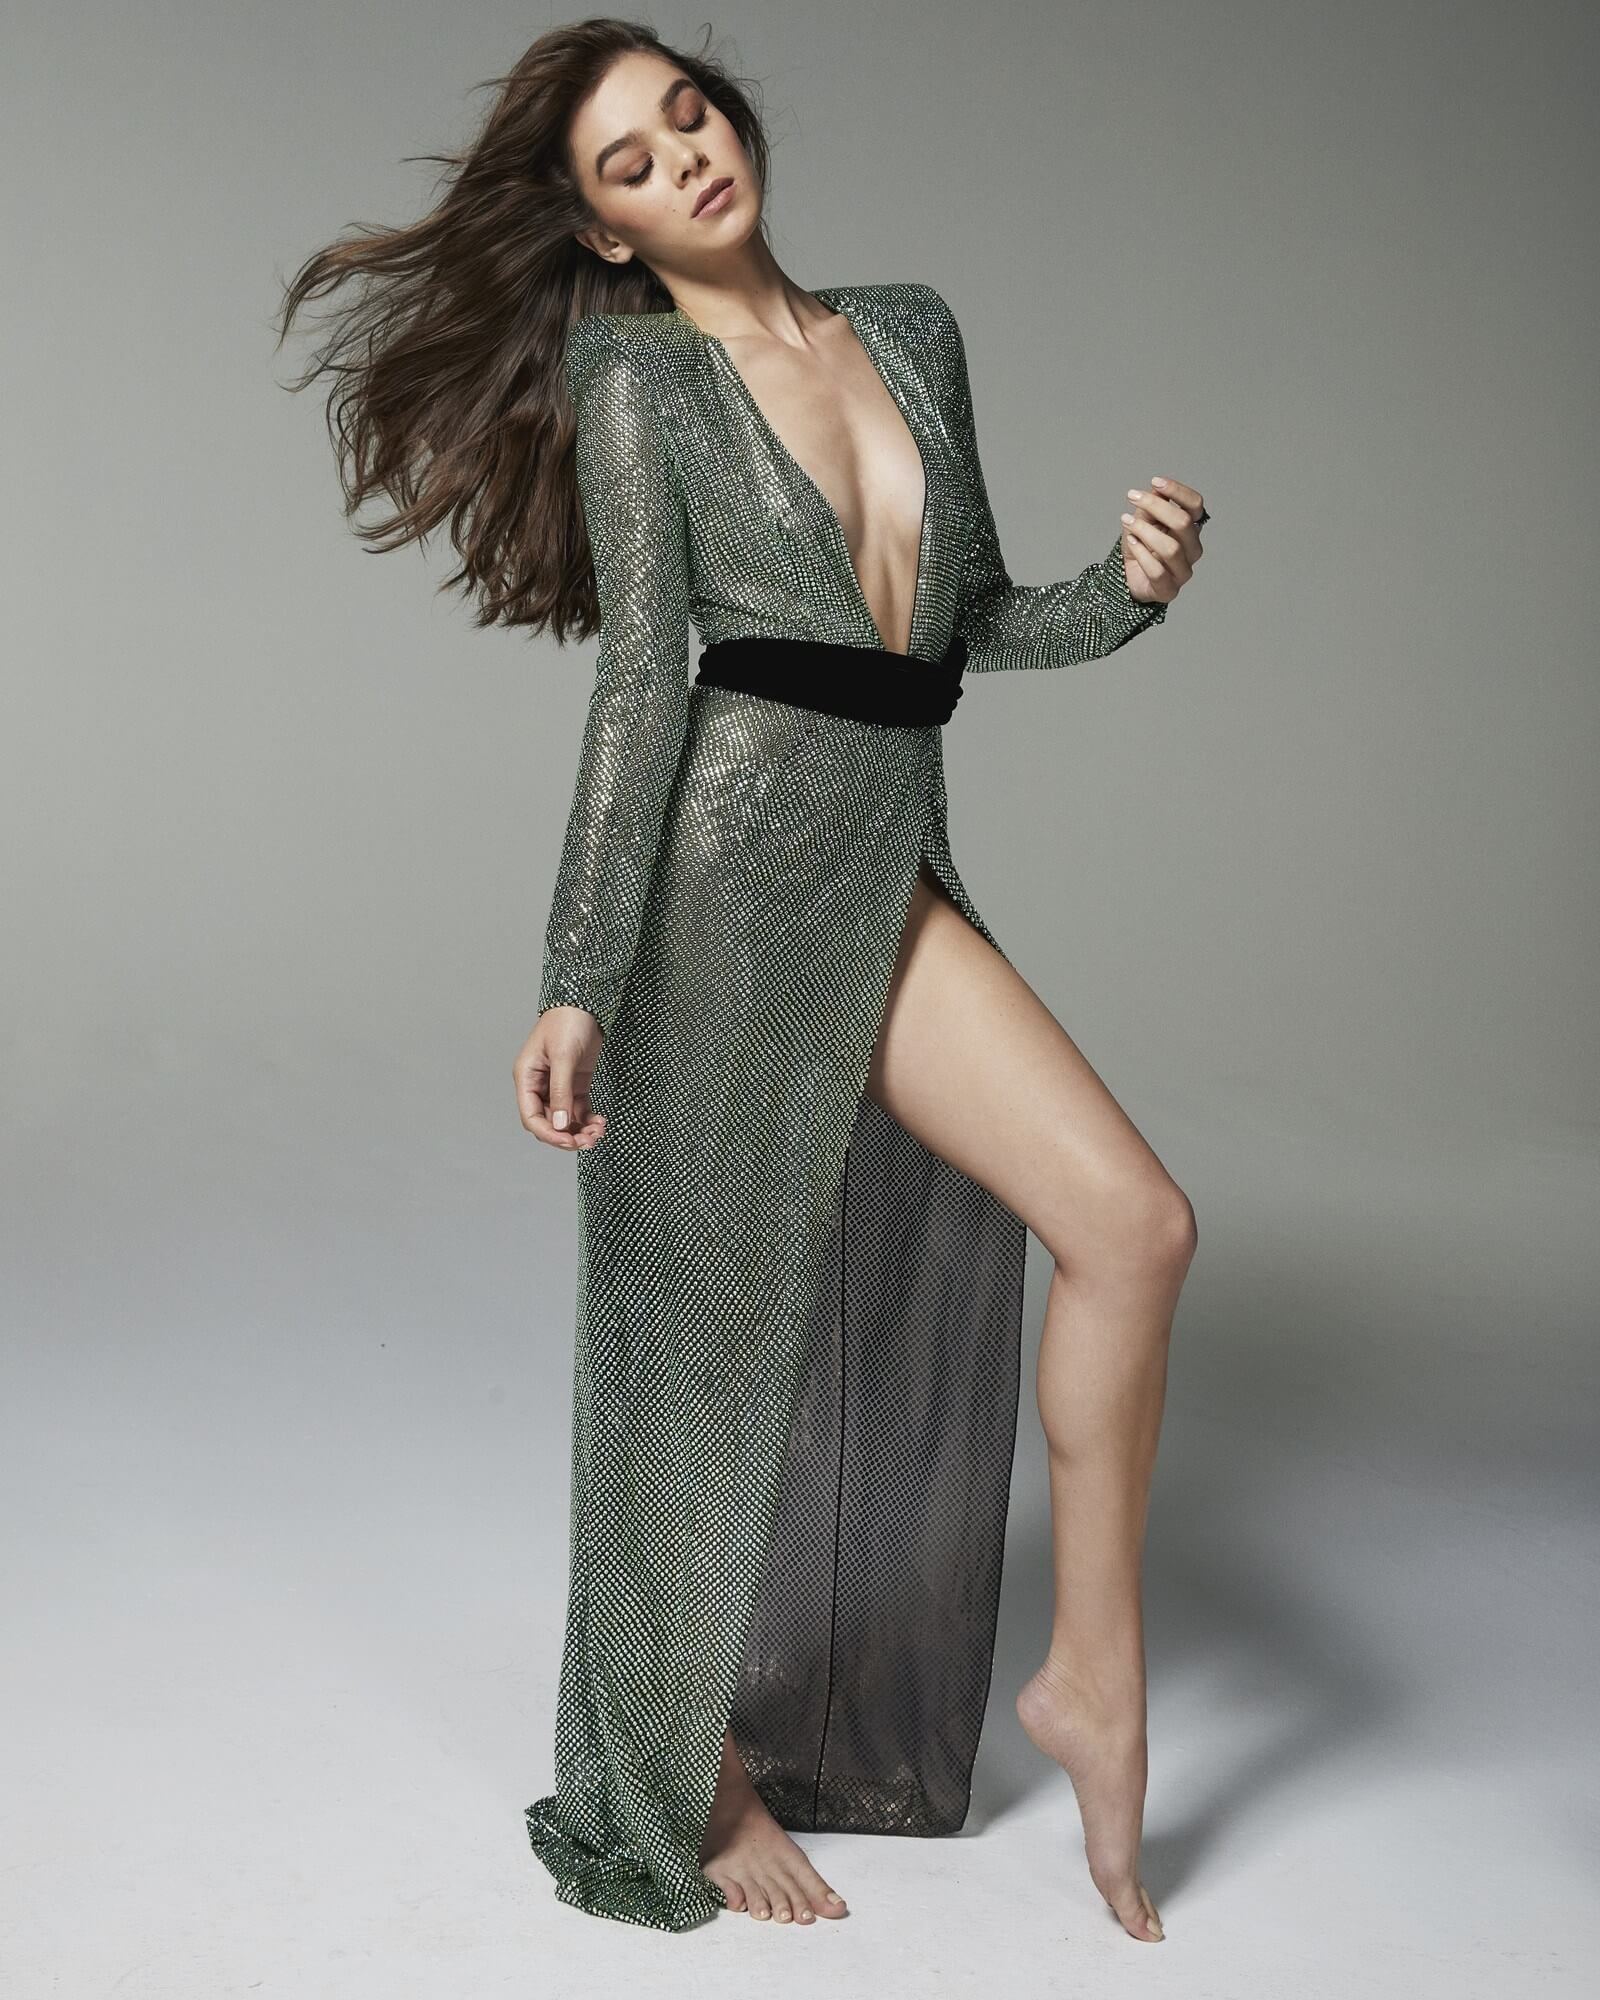 hailee steinfeld sexy busty pictures